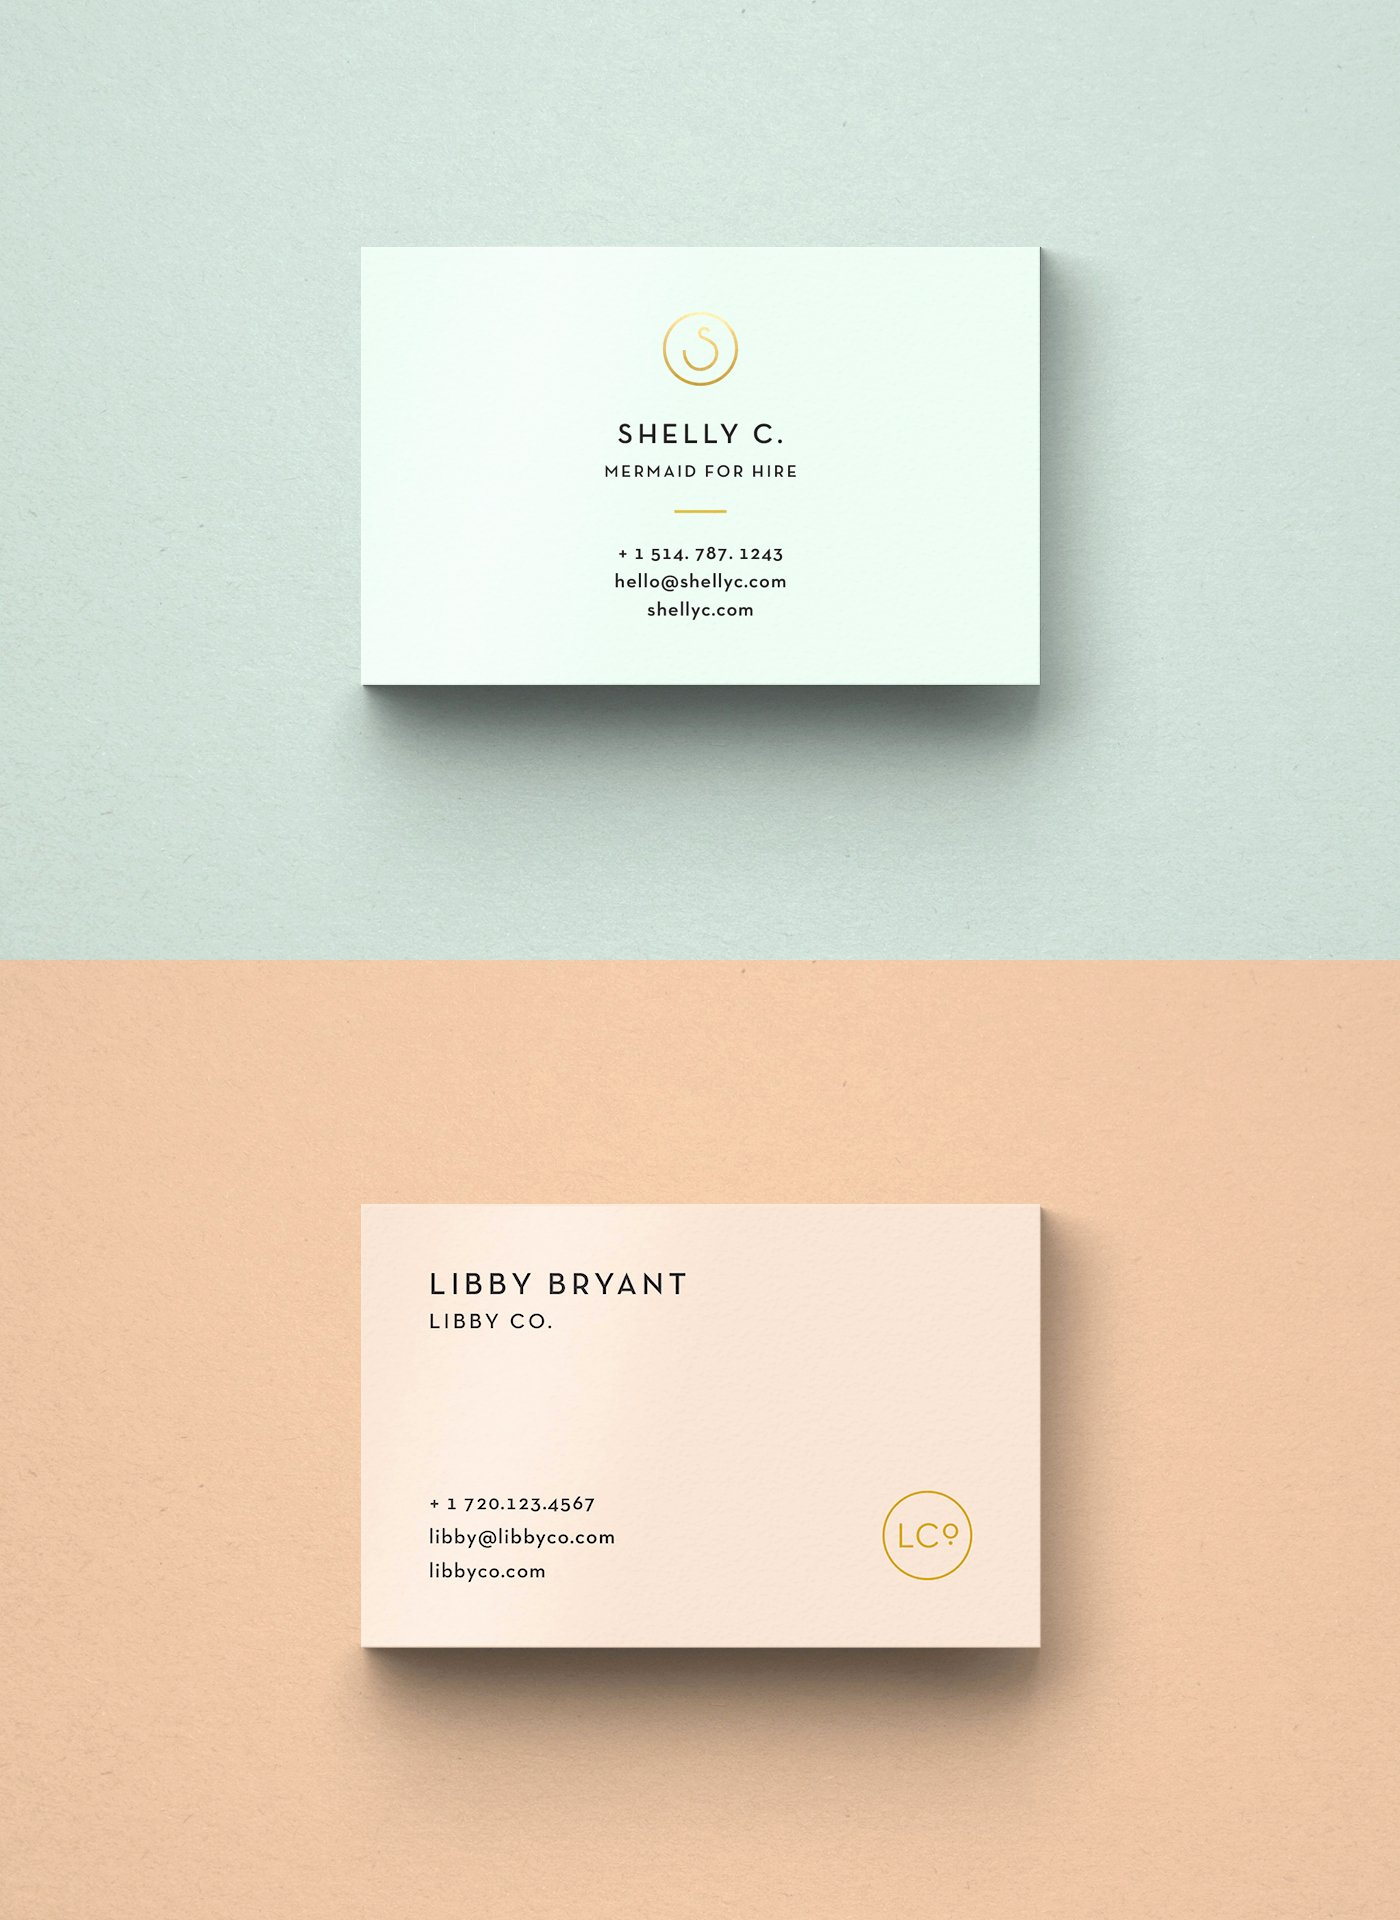 Indesign Business Card Template Free Beautiful Business Card Free Templates for Blank Indesign Business